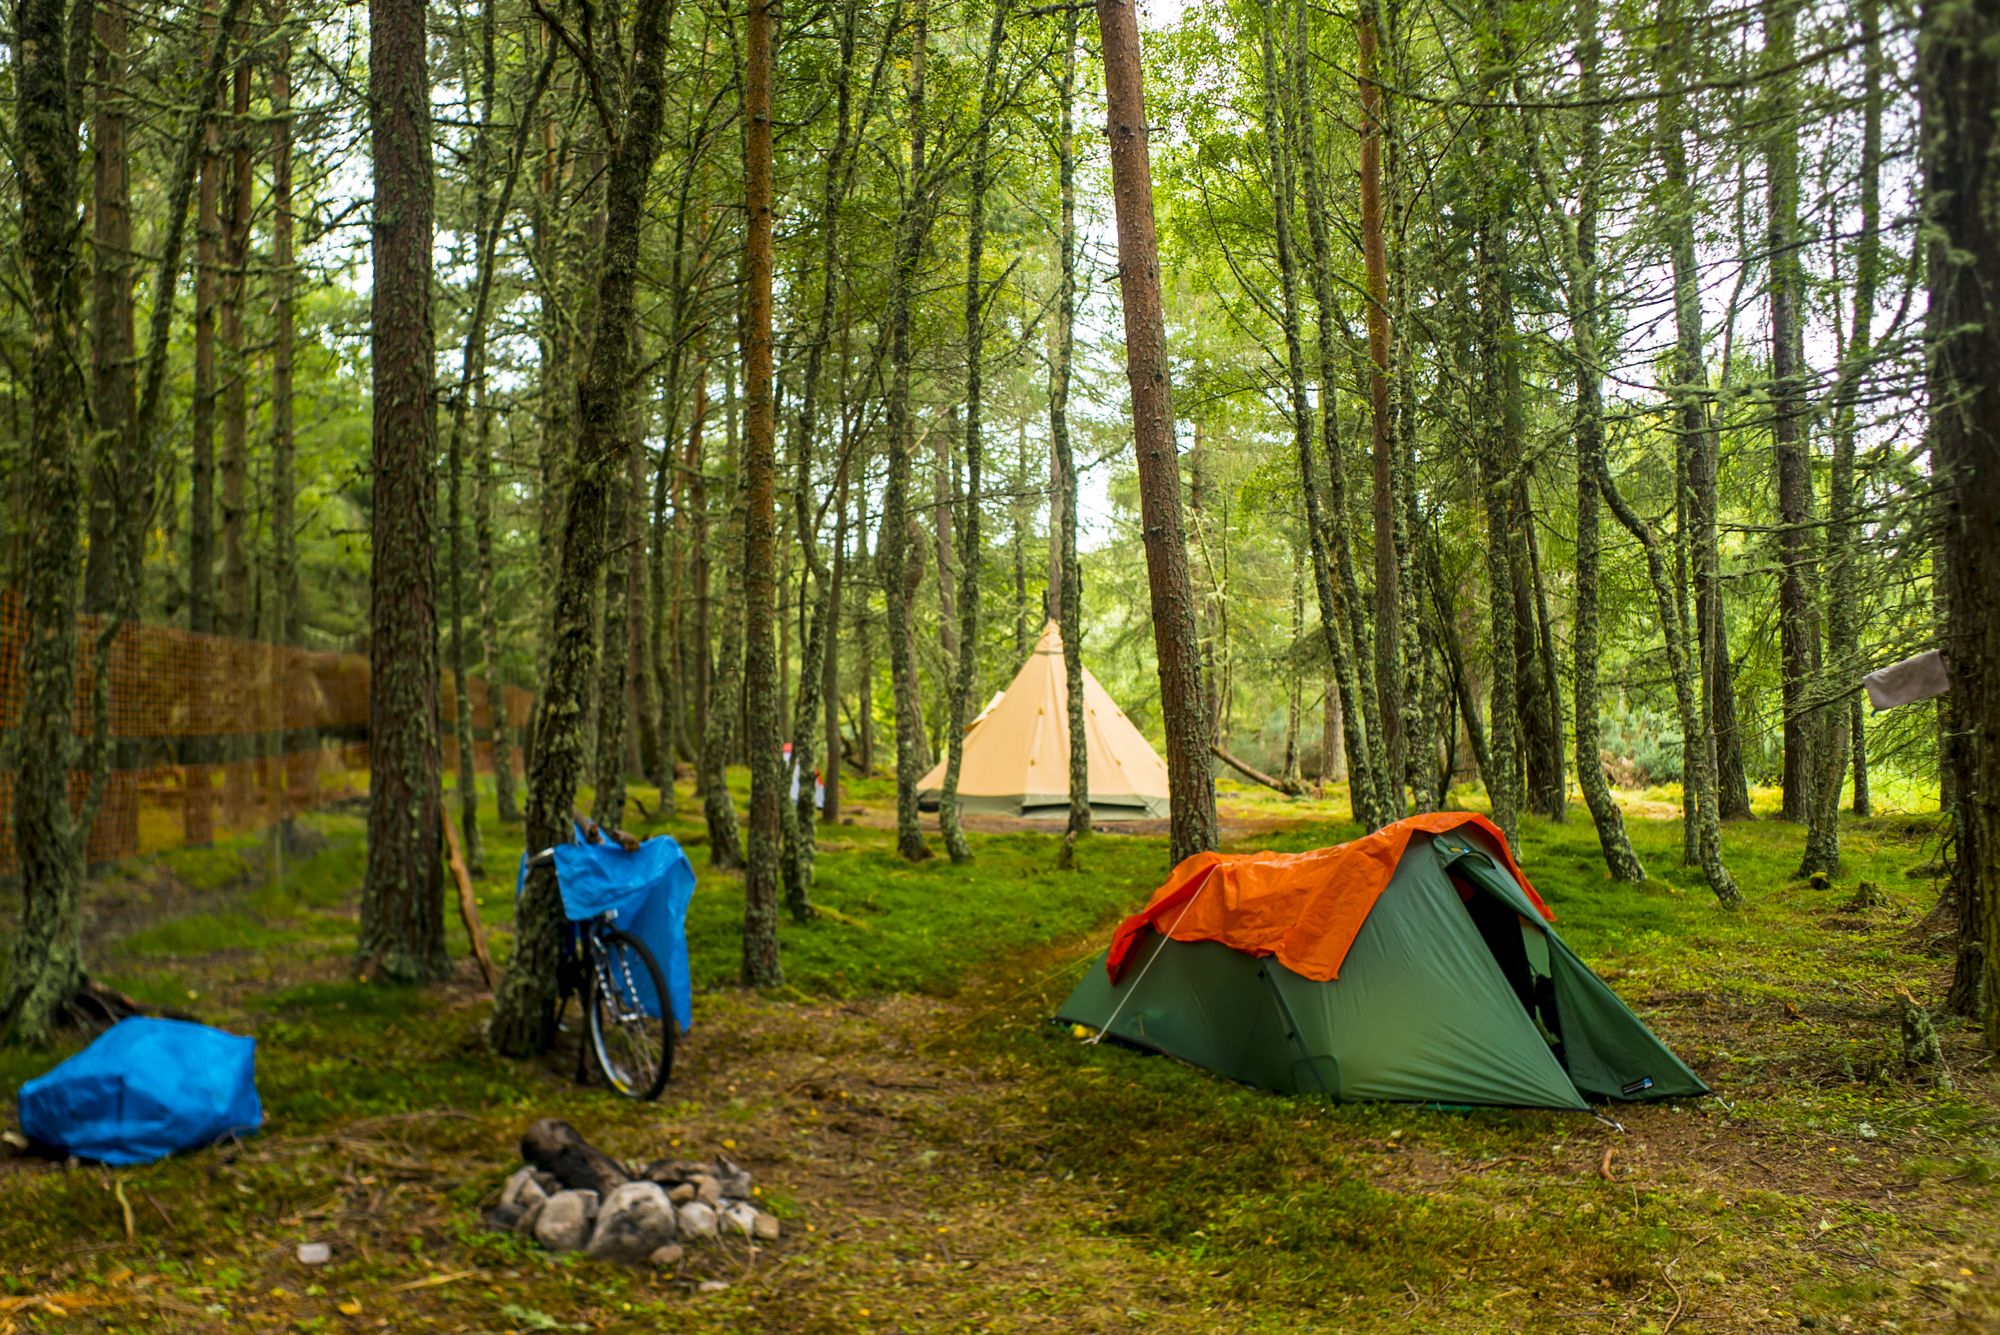 Campsites in Highlands holidays at Cool Camping